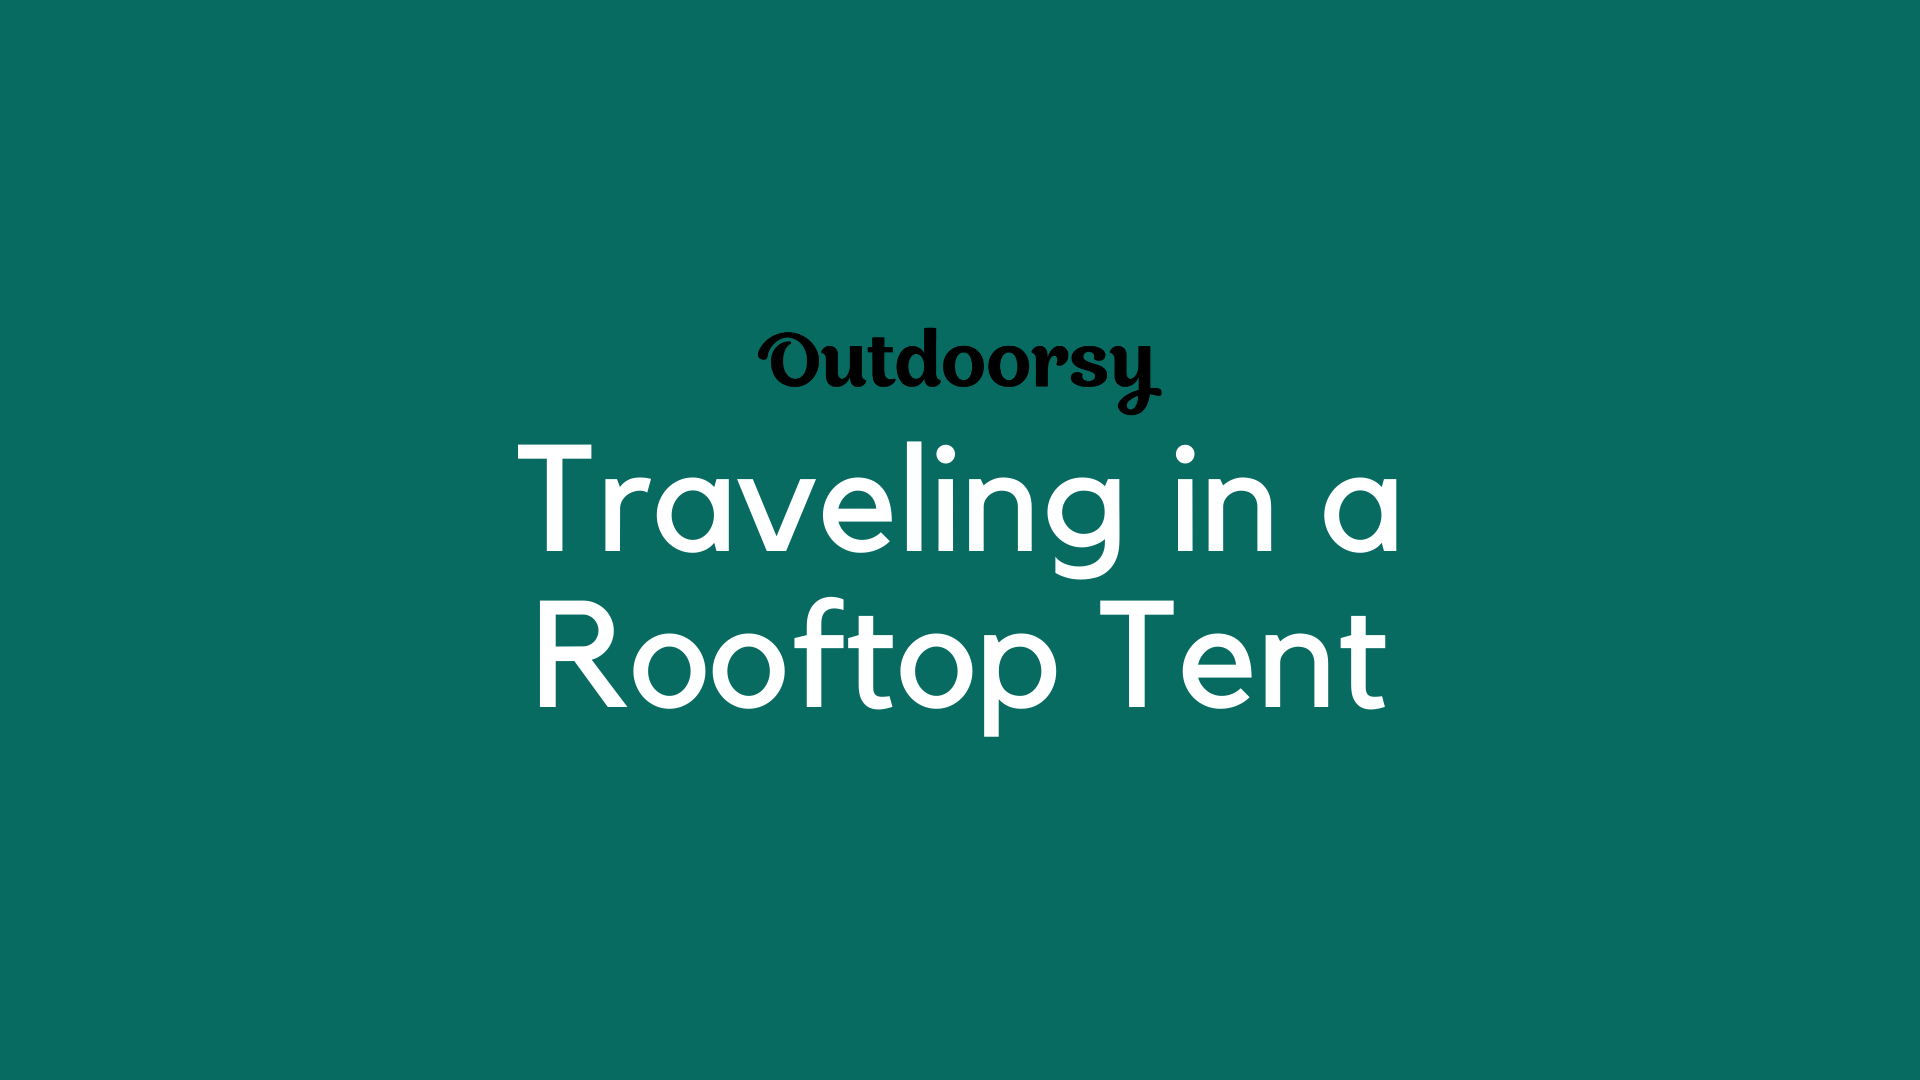 Traveling in a Rooftop Tent